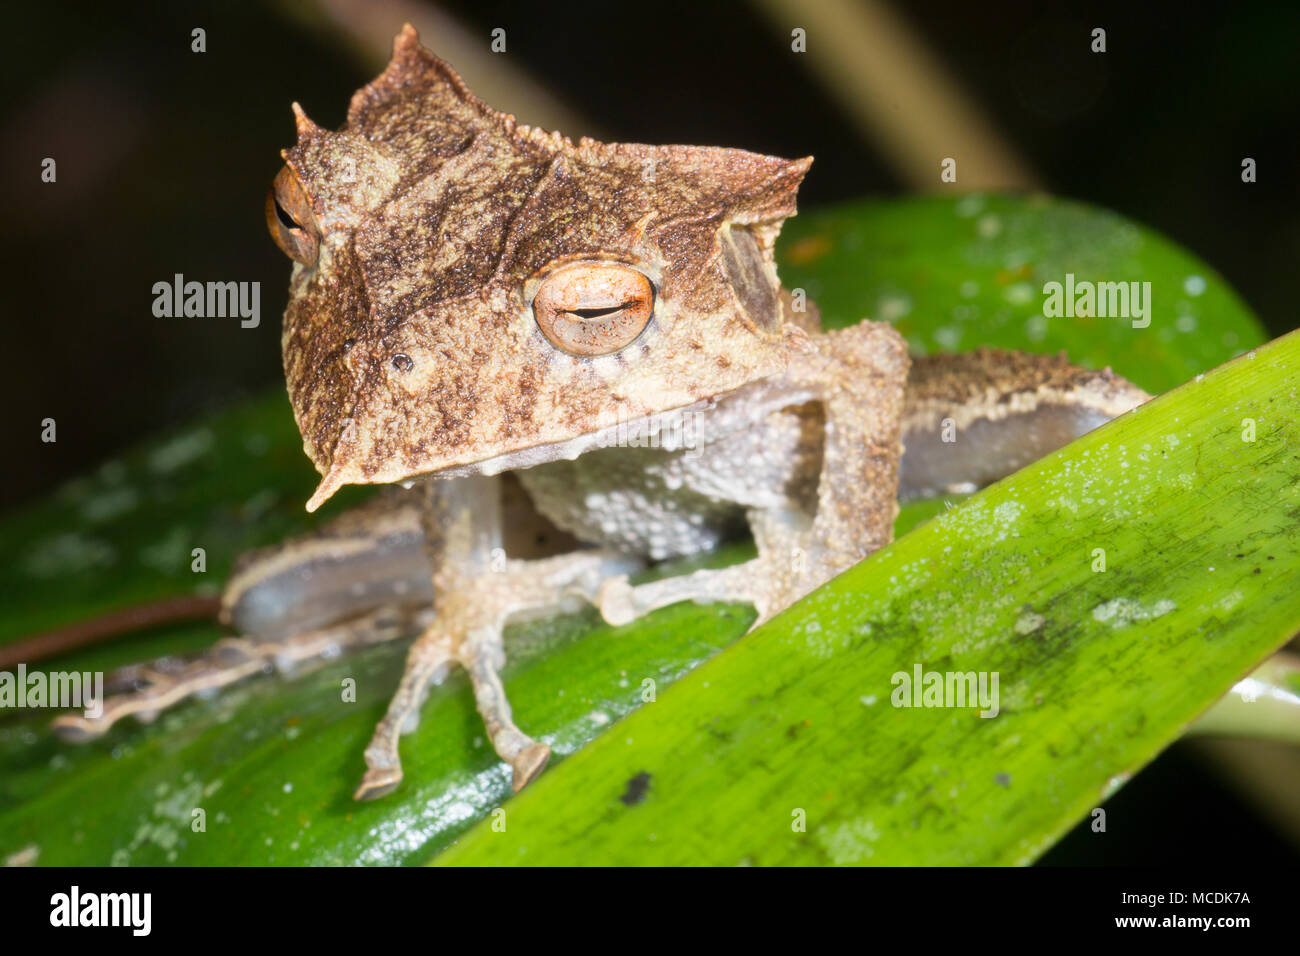 The extremely rare and endangered Ecuador Horned Treefrog (Hemiphractus bubalus). Roosting at night In its natural habitat the rainforest understory,  - Stock Image